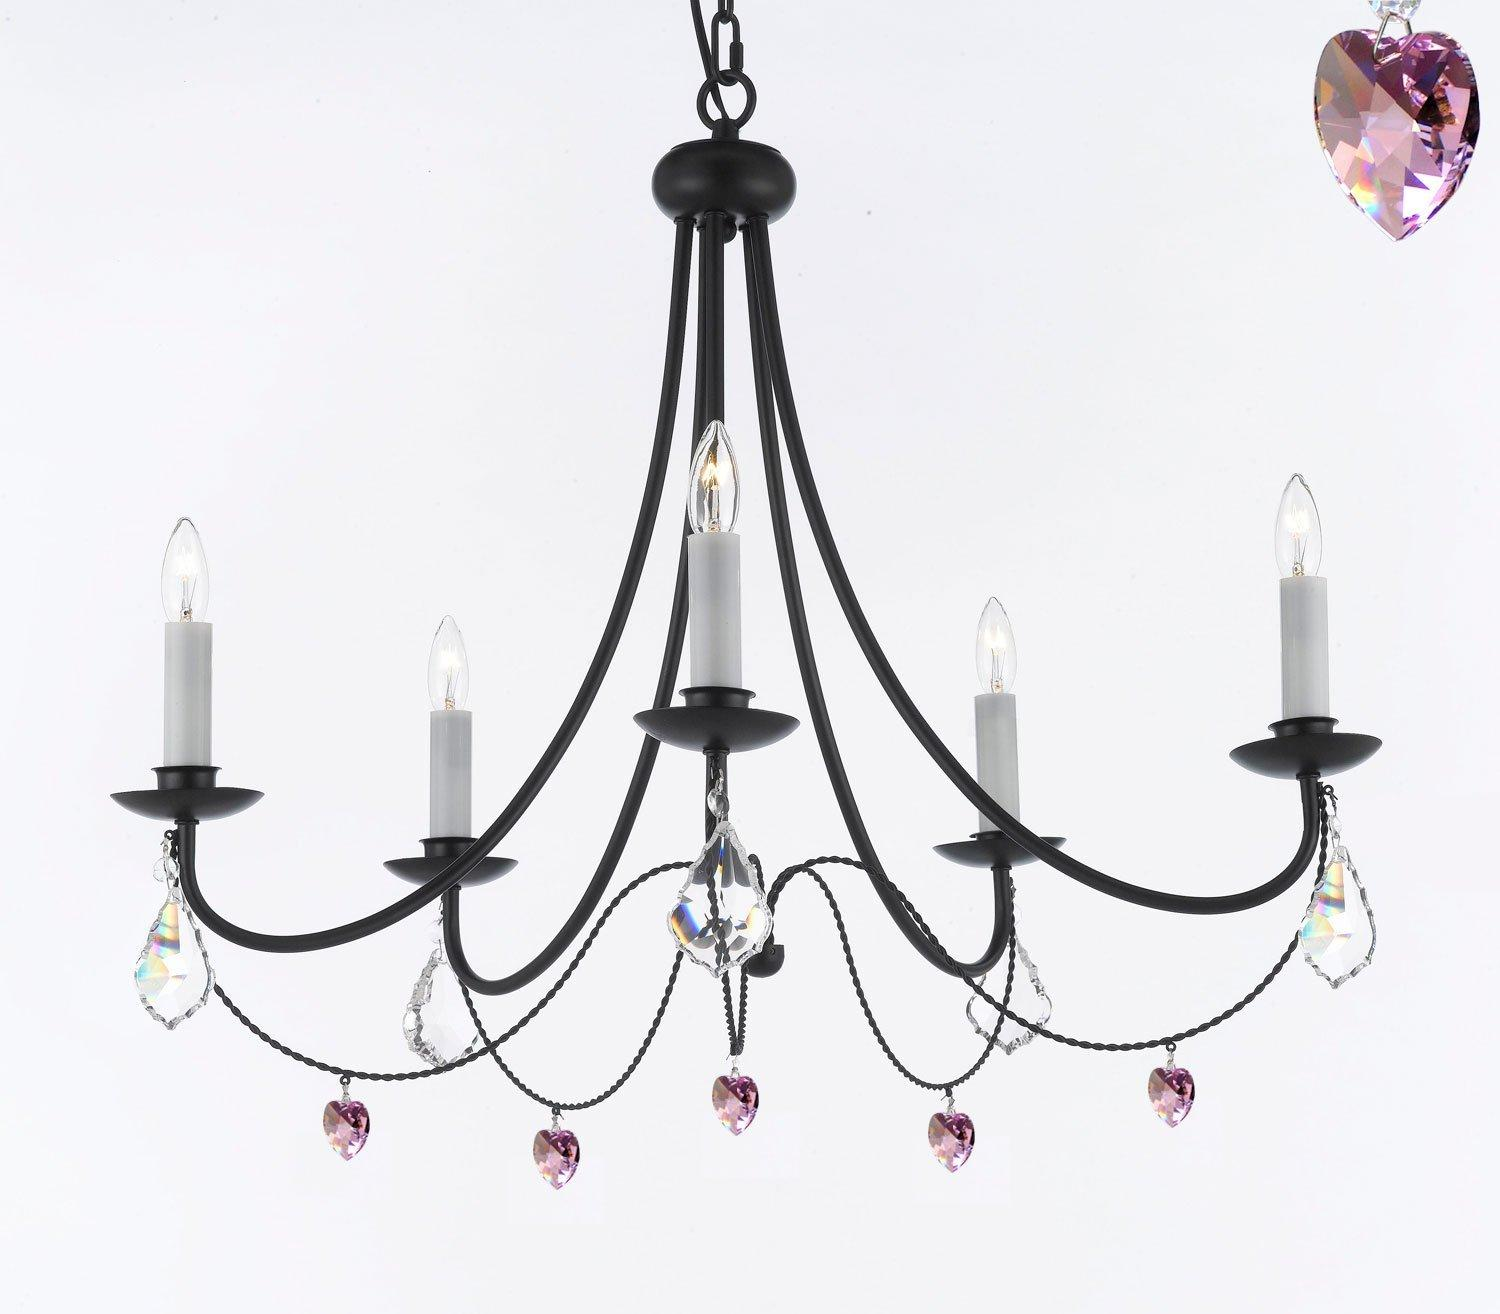 Empress Crystal Wrought Iron Chandelier Lighting With Pink Crystal*Hearts*Perfect for Kid's Rooms H22.5 x W26